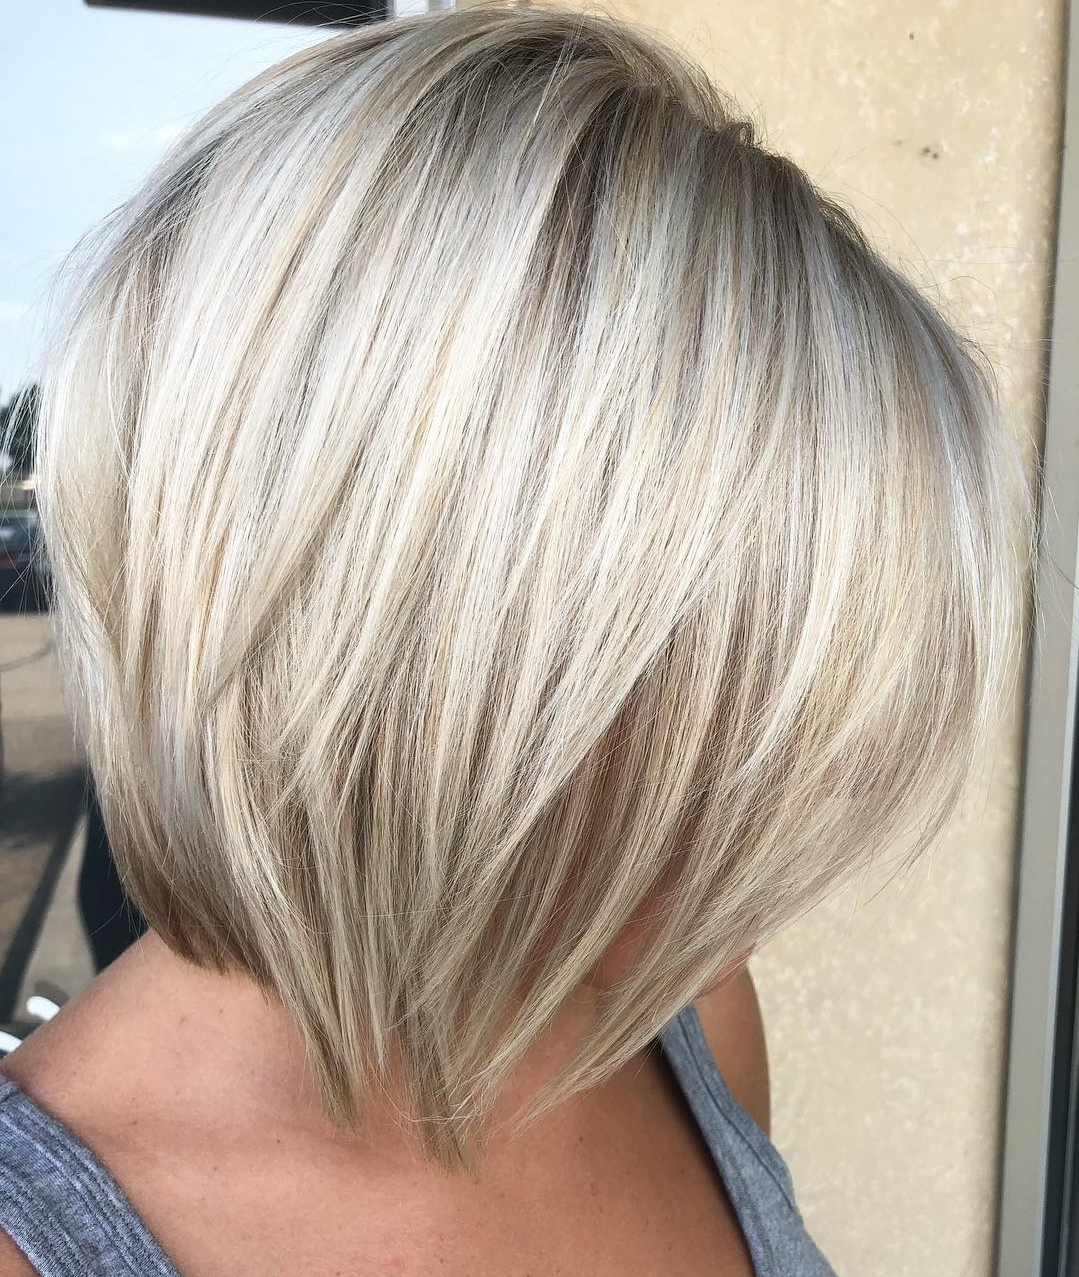 21 Most Amazing Bob Haircuts For Thin Hair – Haircuts In Recent Short Cappuccino Bob Hairstyles (View 13 of 20)